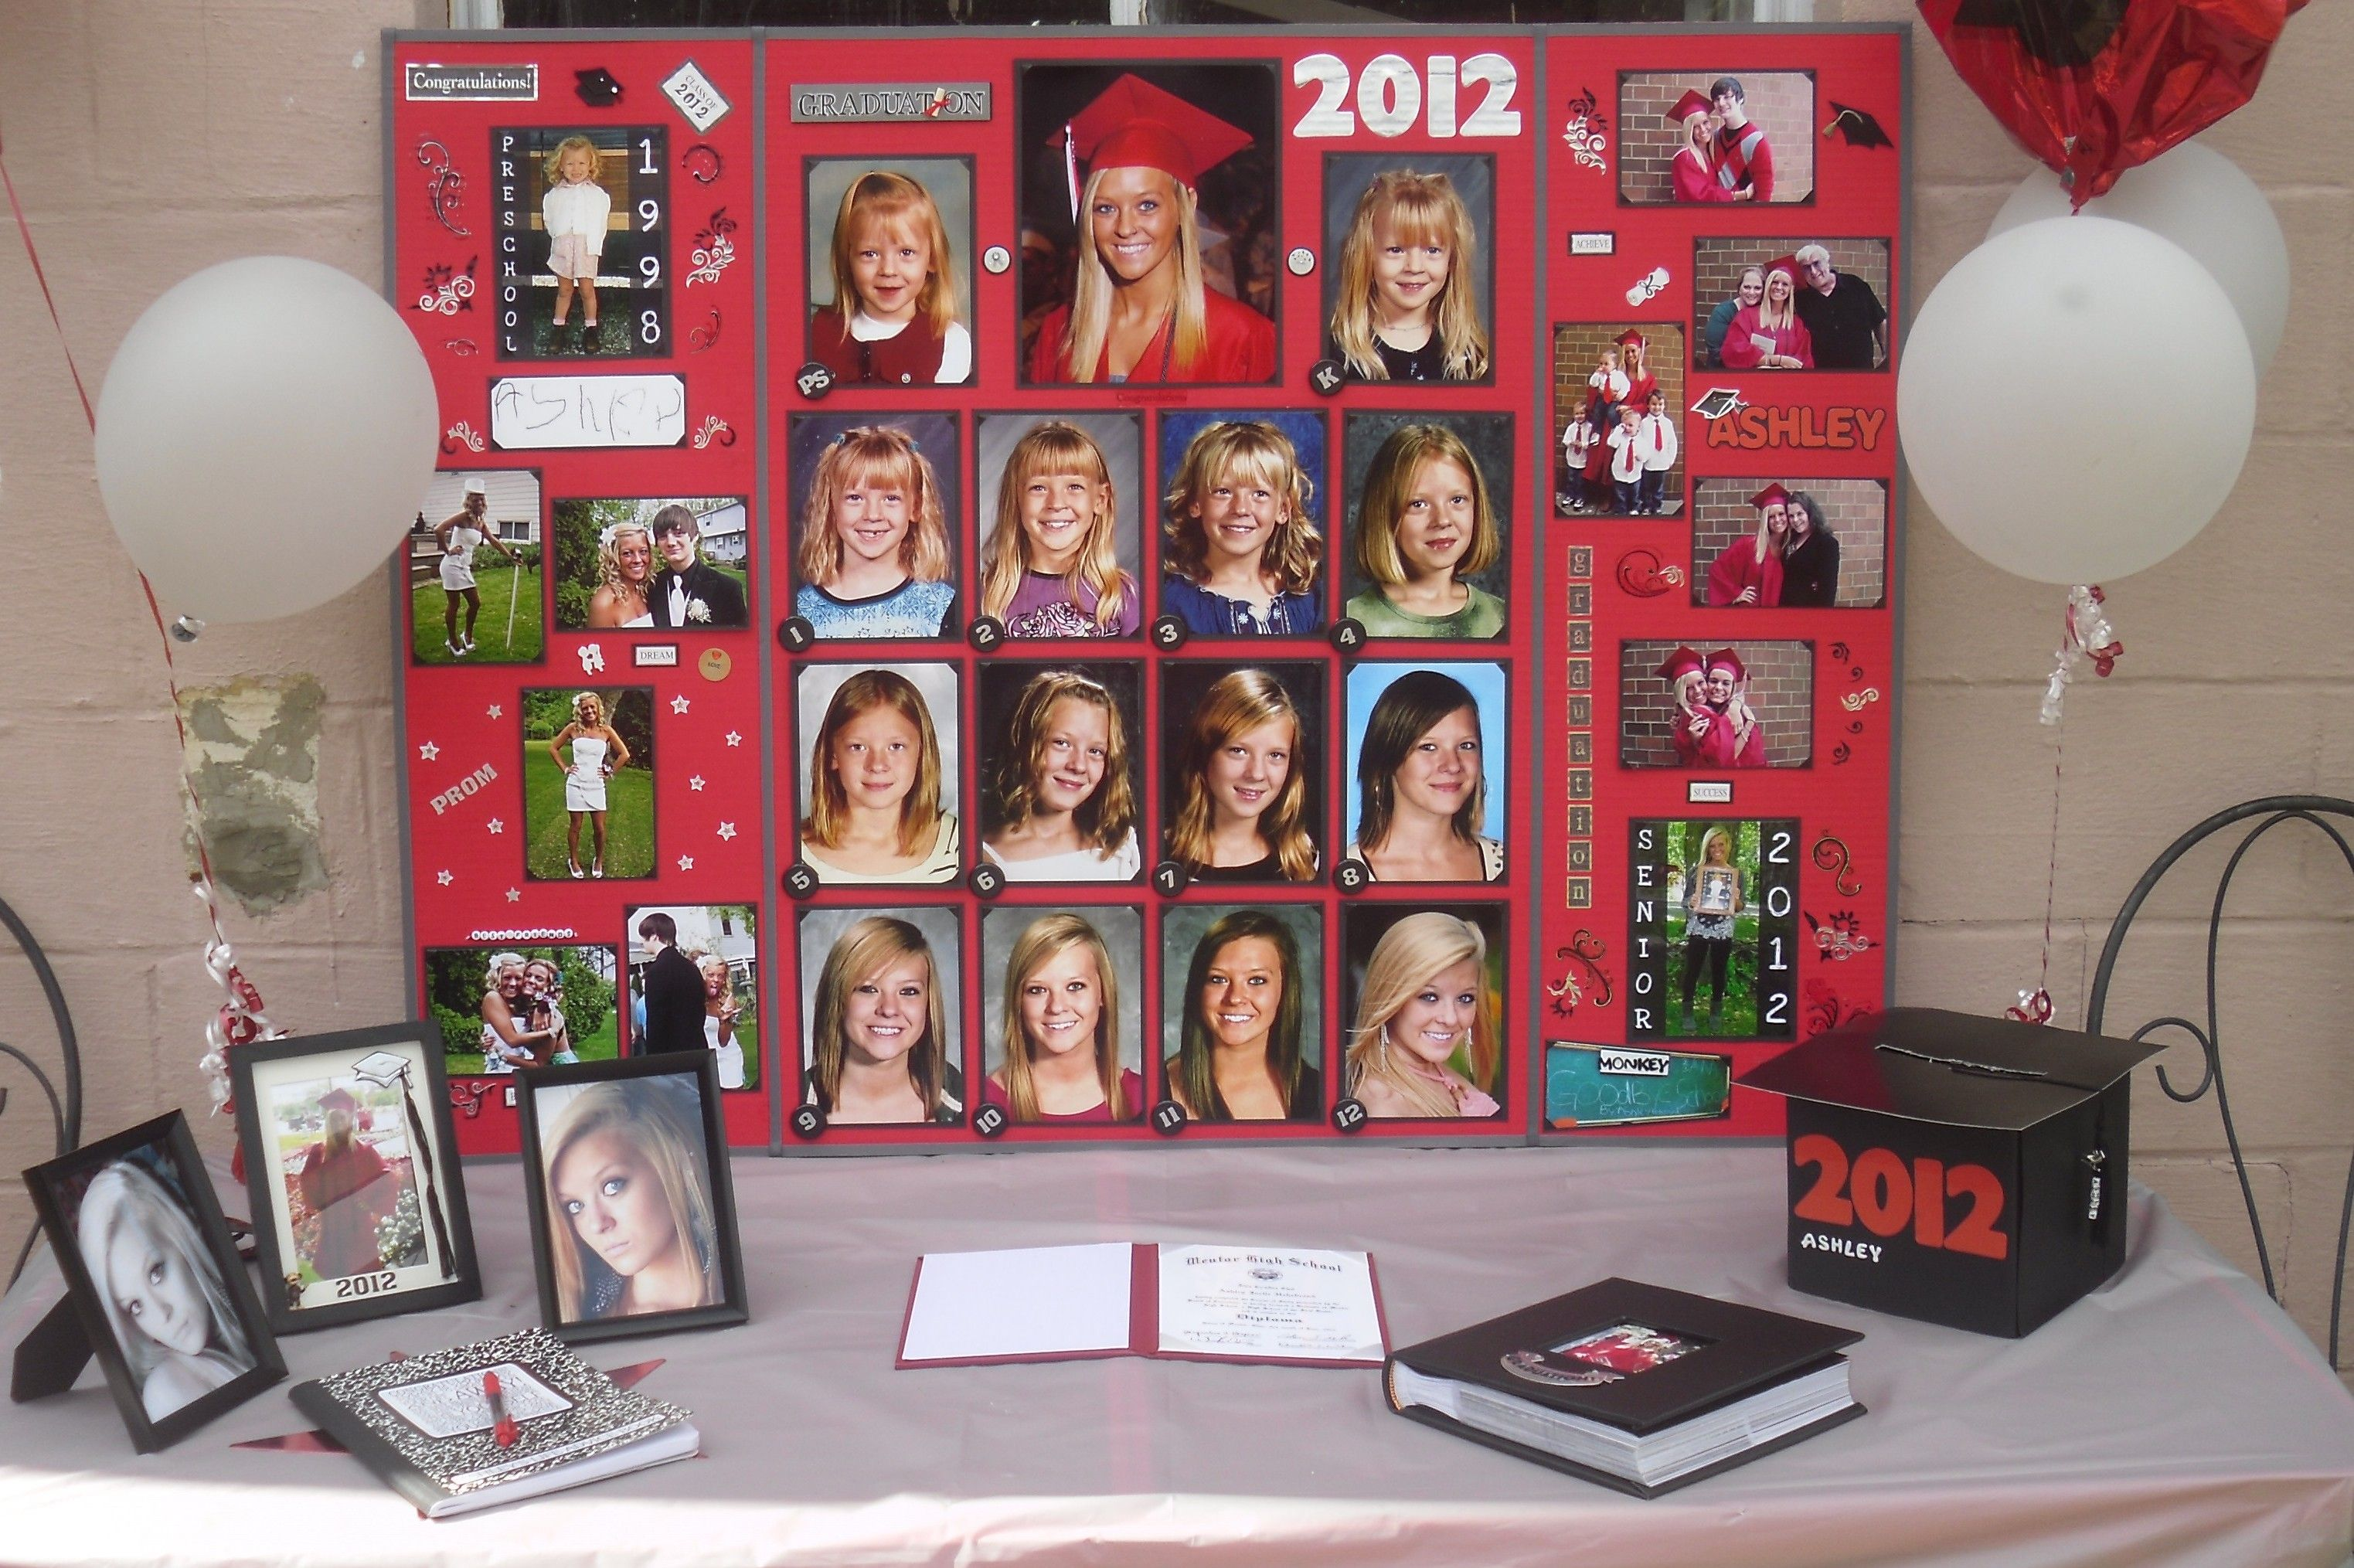 Ideas For Display Boards : Graduation party ideas poster